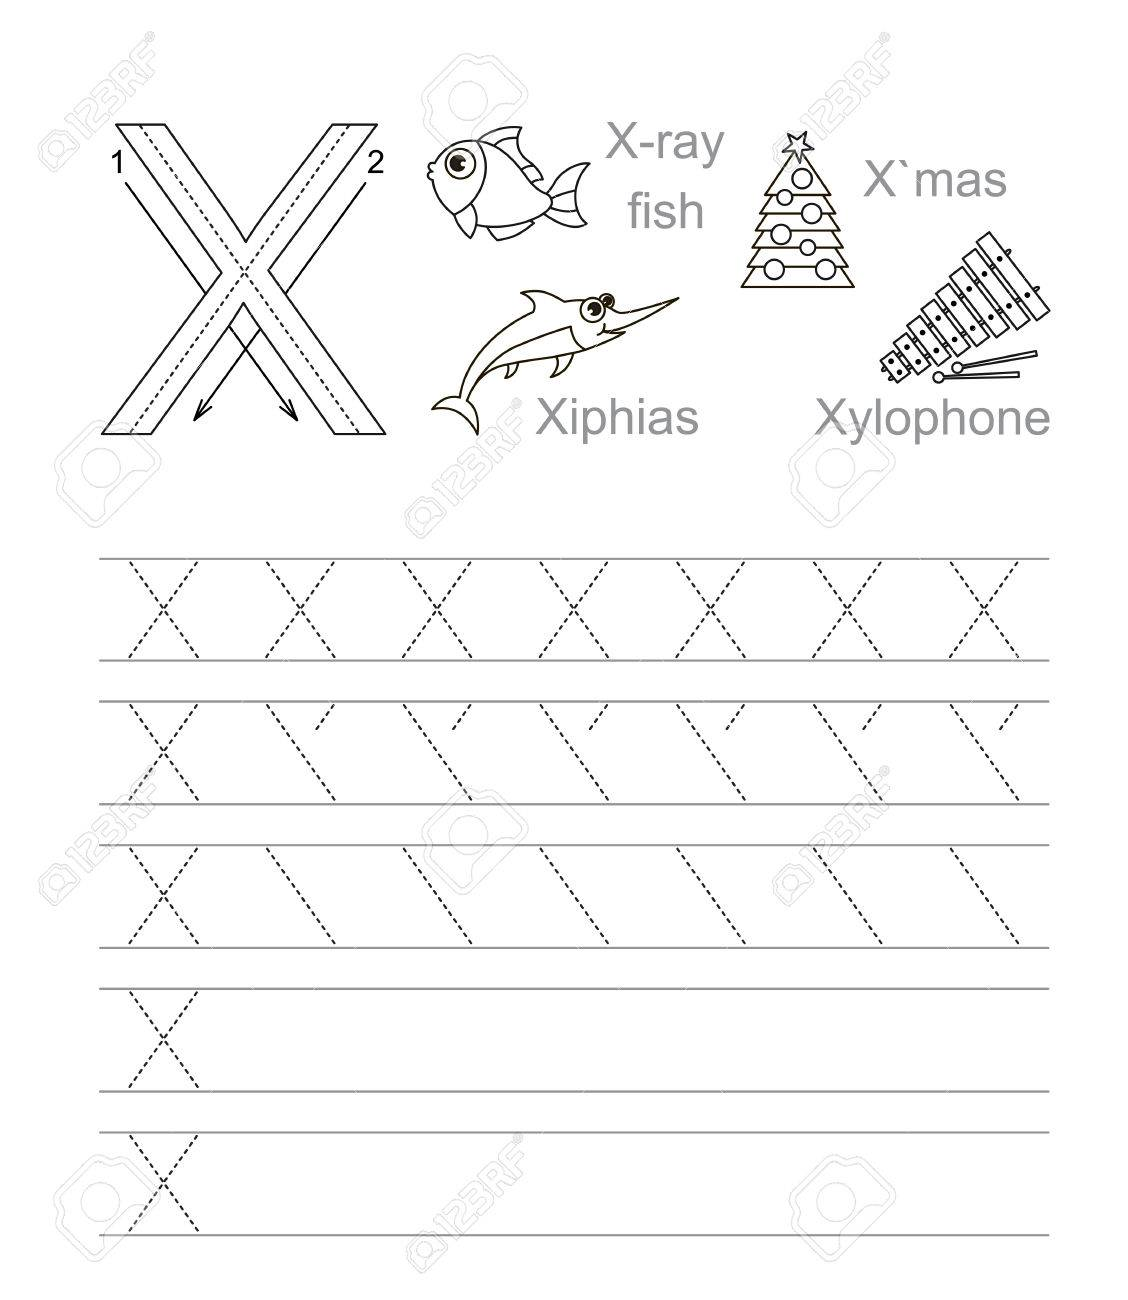 worksheet Letter X Worksheet vector exercise illustrated alphabet learn handwriting tracing worksheet for letter x page to be colored